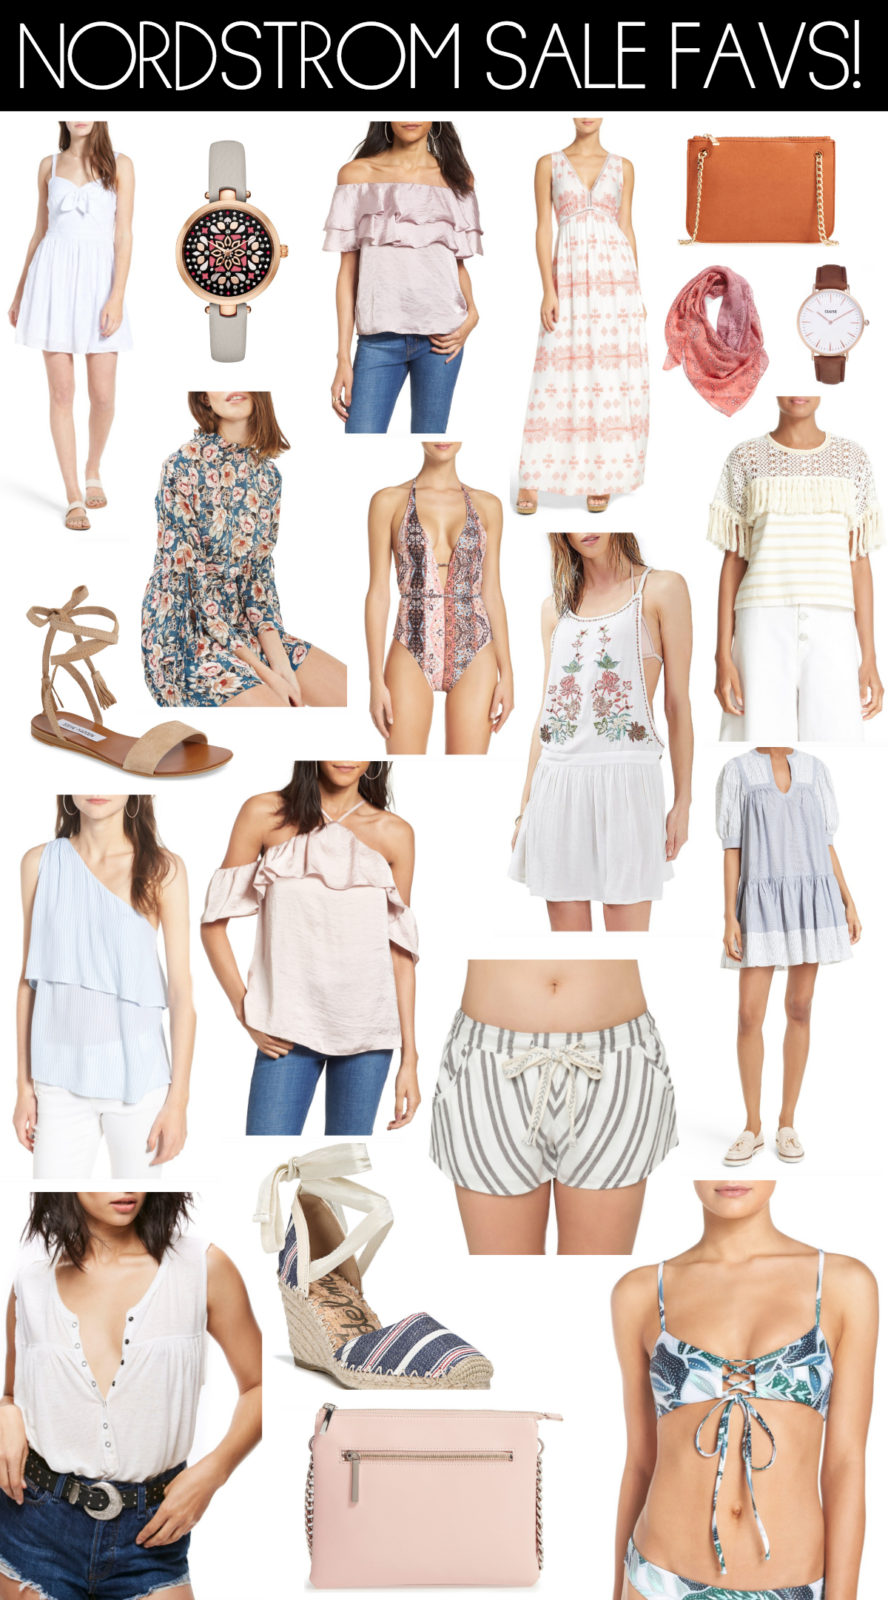 Nordstrom Half Yearly Sale Favorites!